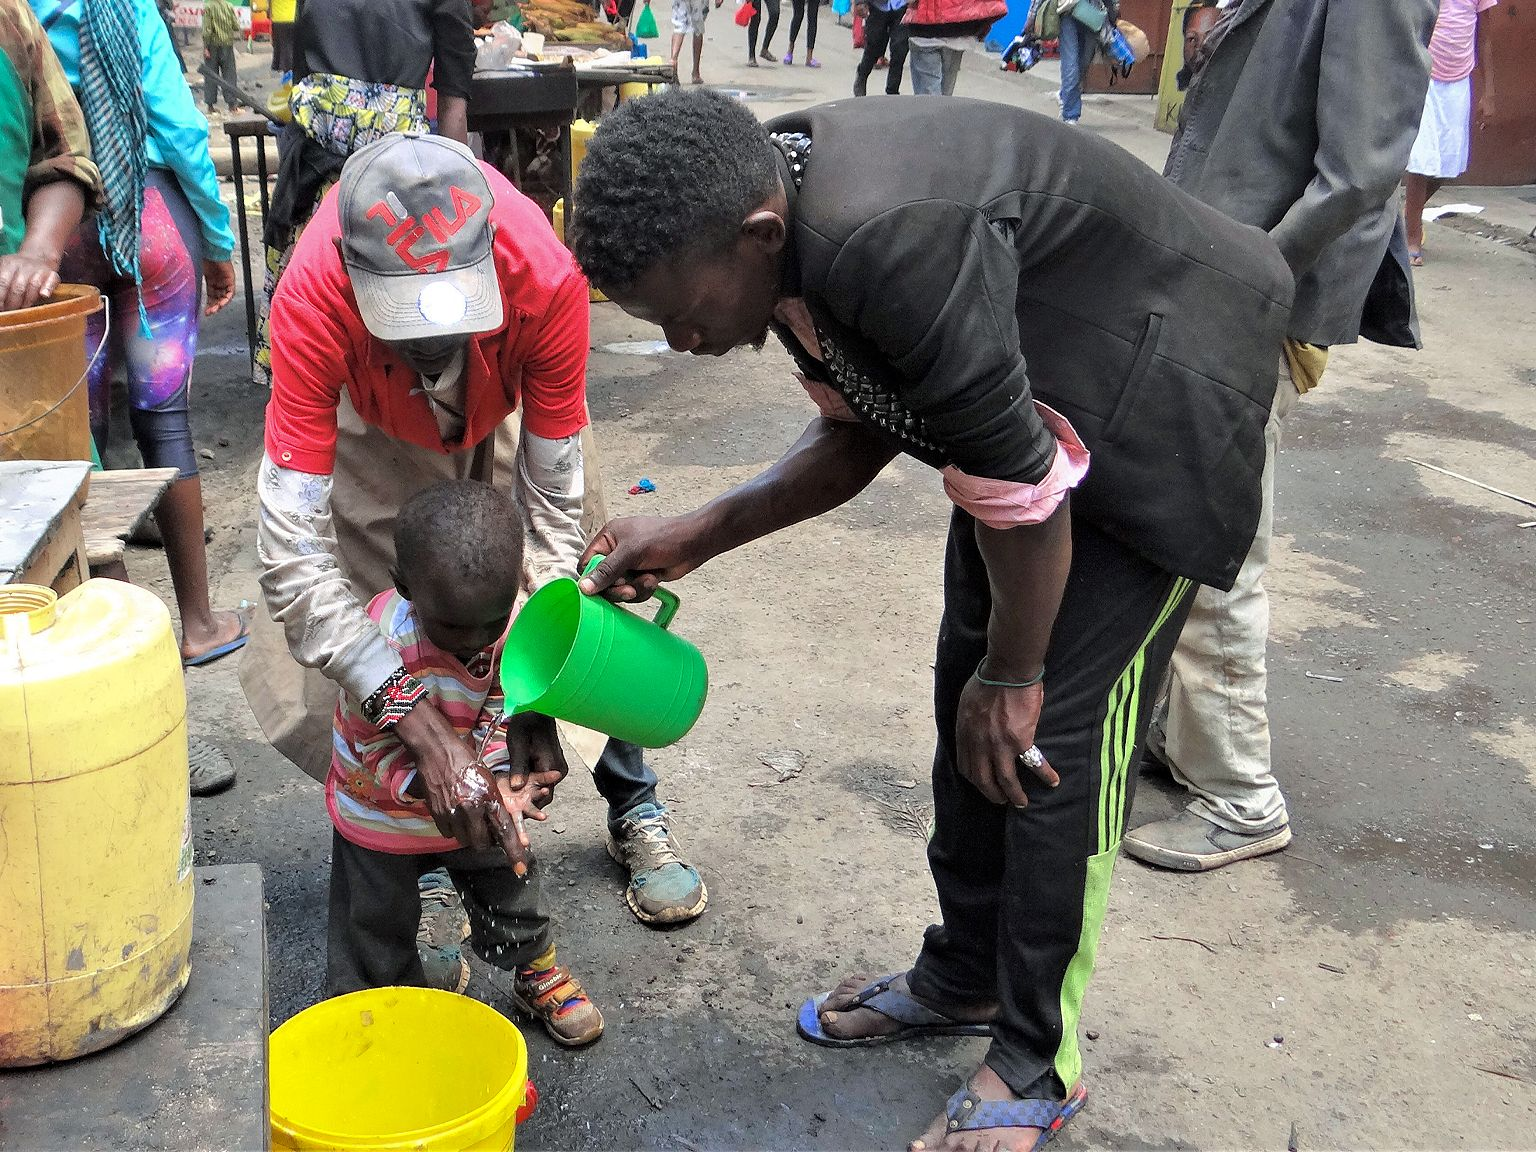 A photo of two men helping a small child wash his hands at a public station in the street